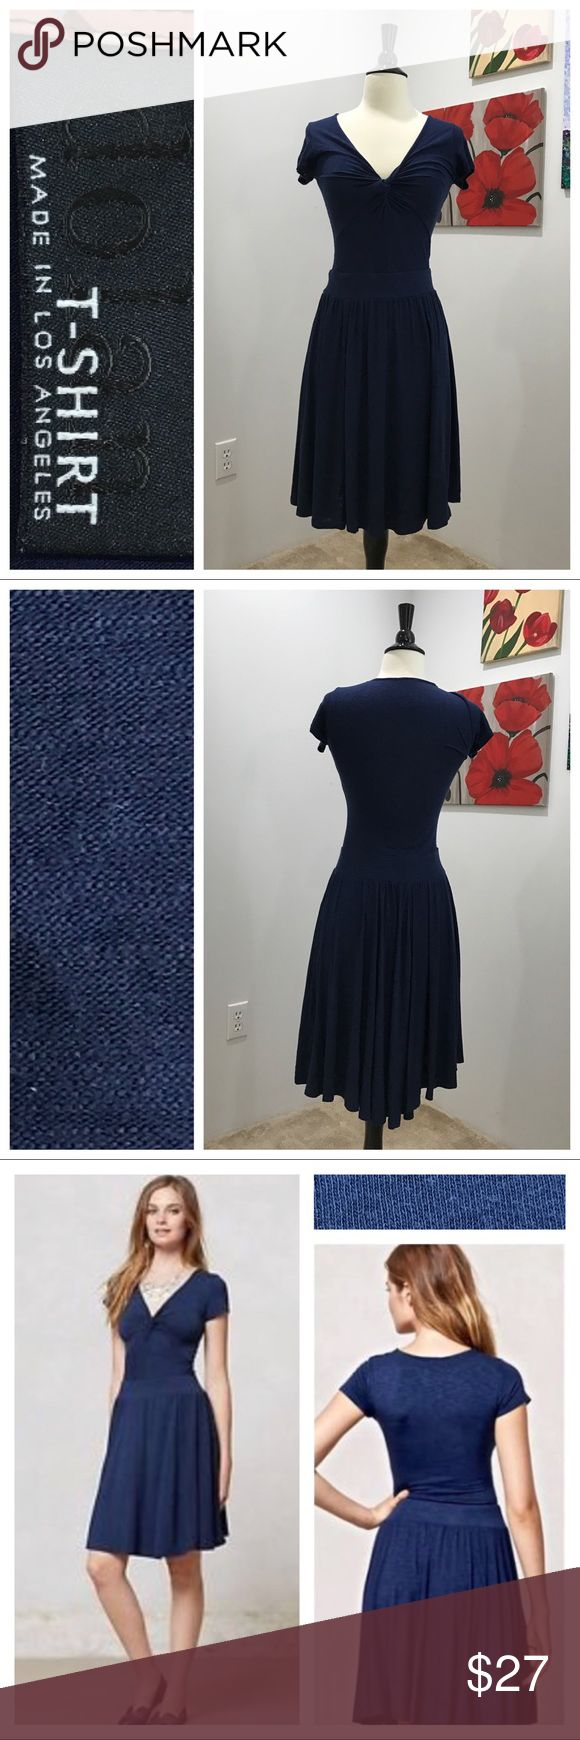 """Anthropologie's Taya Knotted dress by Dolan Bright navy. Great preloved condition. Per Anthro - """"We can't resist a dress that understands our lounge-to-the-last-minute weekend mindset. Dolan's effortless jersey dress is ready to float out the door with booties and a printed scarf."""" Pullover styling. Rayon/Spandex jersey knit. No trades. Price firm unless bundled. Anthropologie Dresses"""